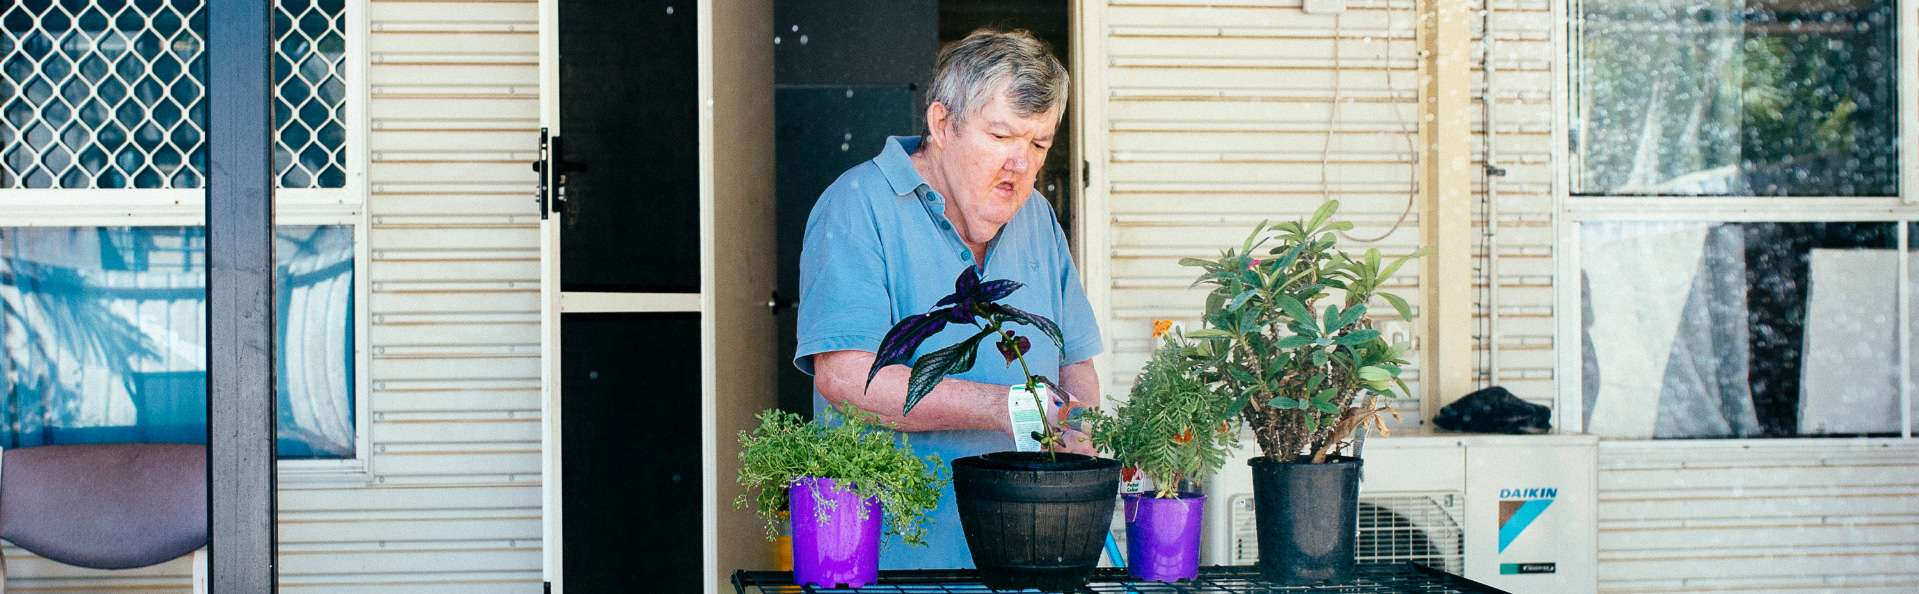 Supported Independent Living client enjoys tending to his plants